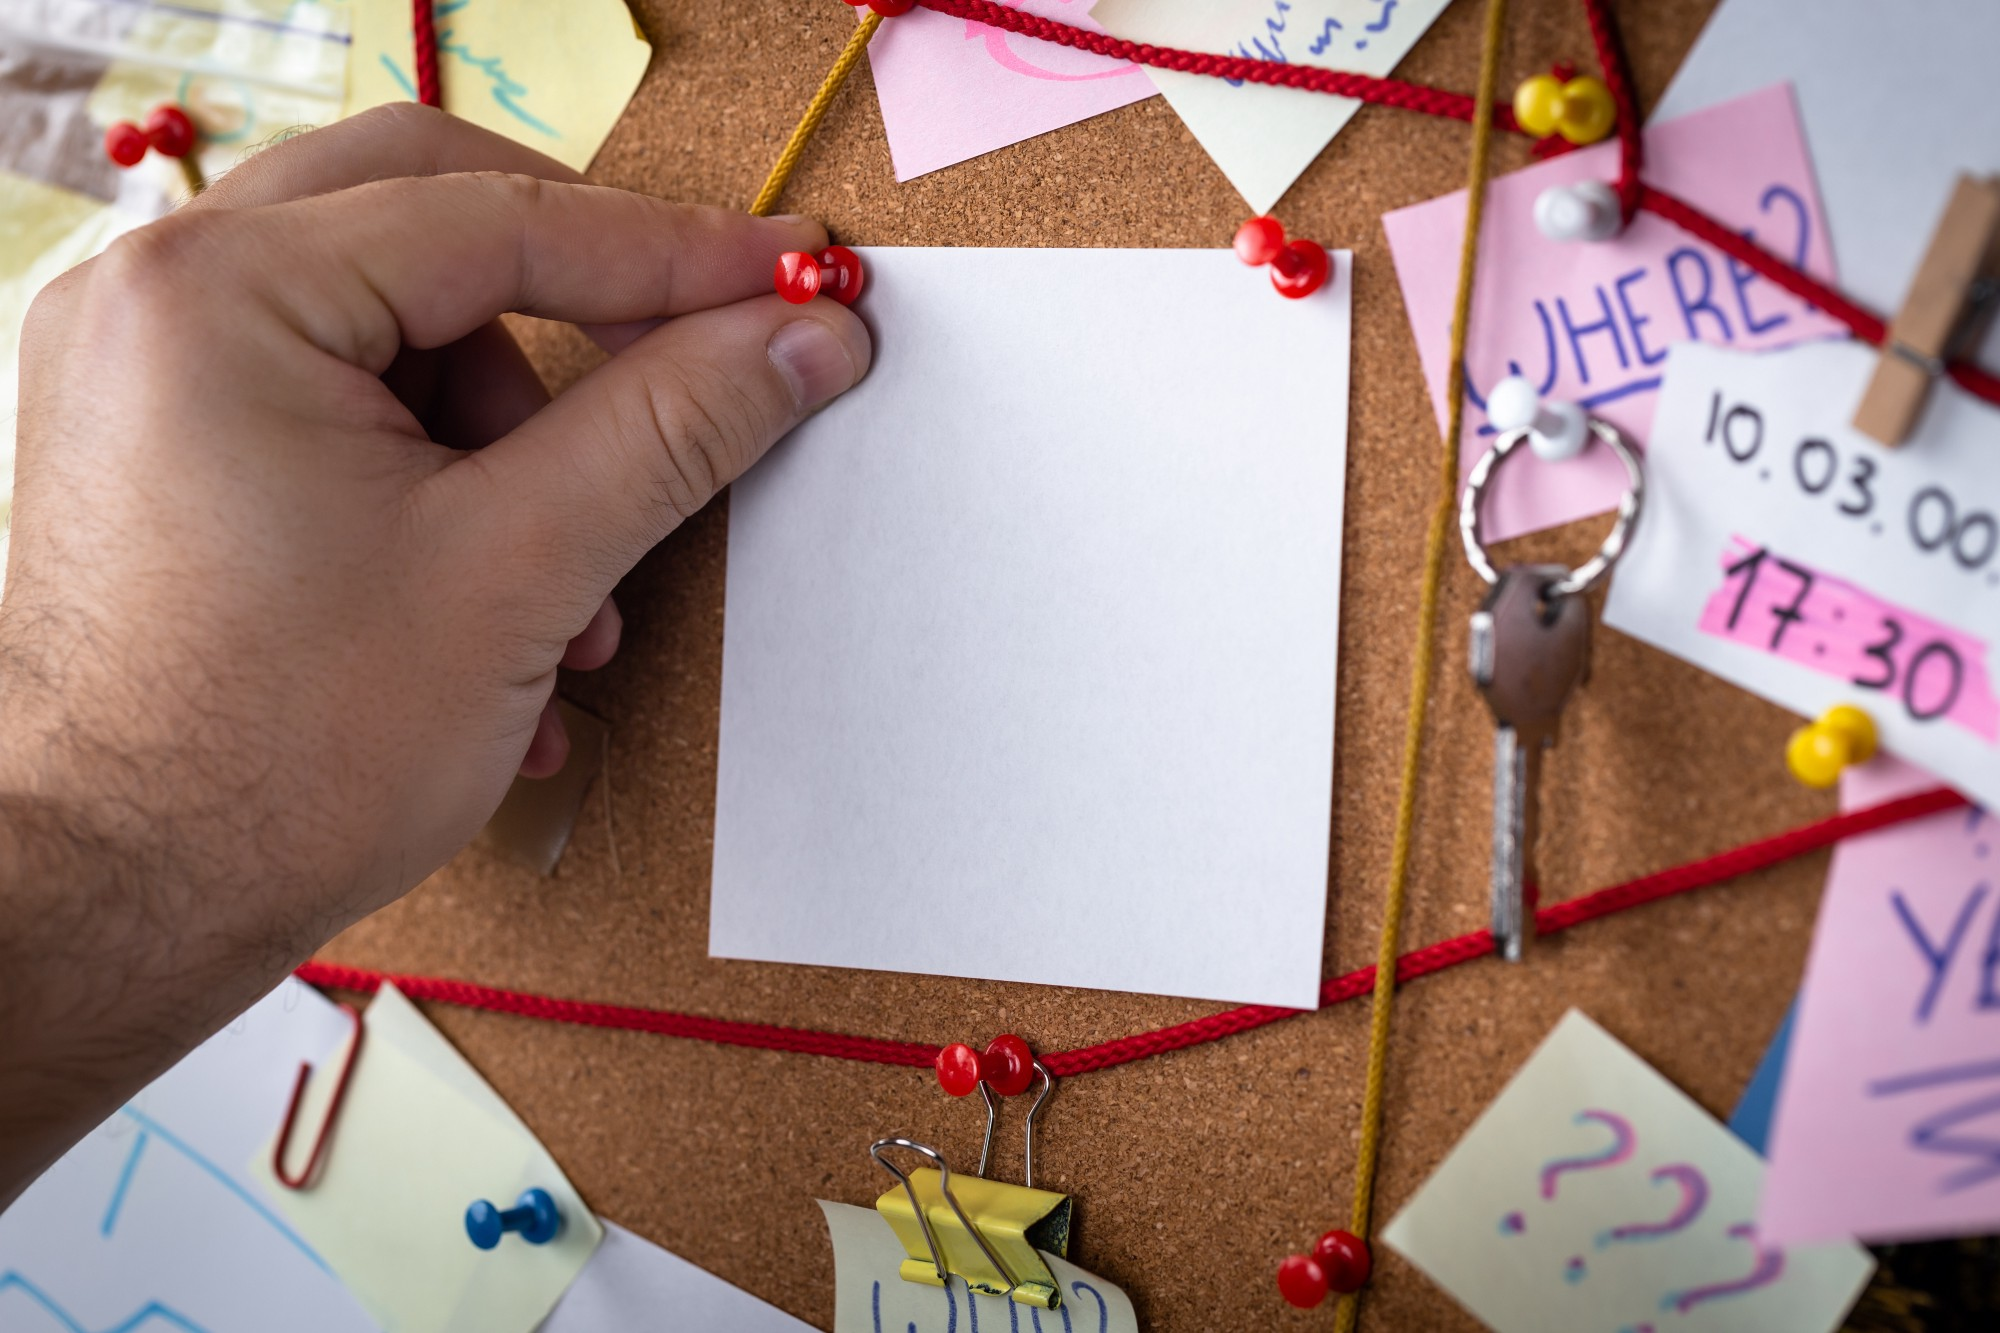 A man pinning a blank post-it note to a cork board.